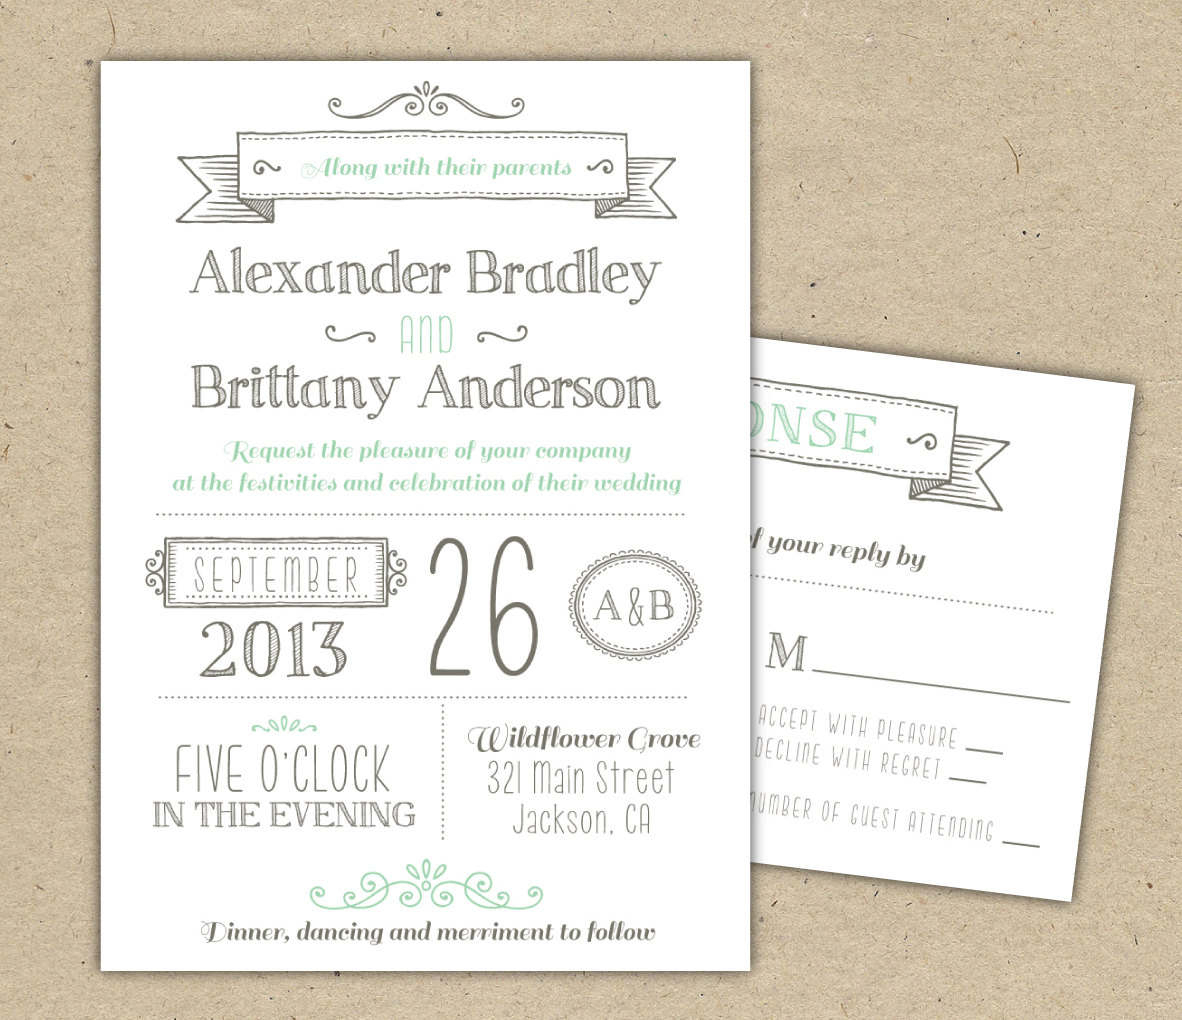 Wedding Invites Templates Free Printable Wedding Invitations - Free Printable Wedding Invitations